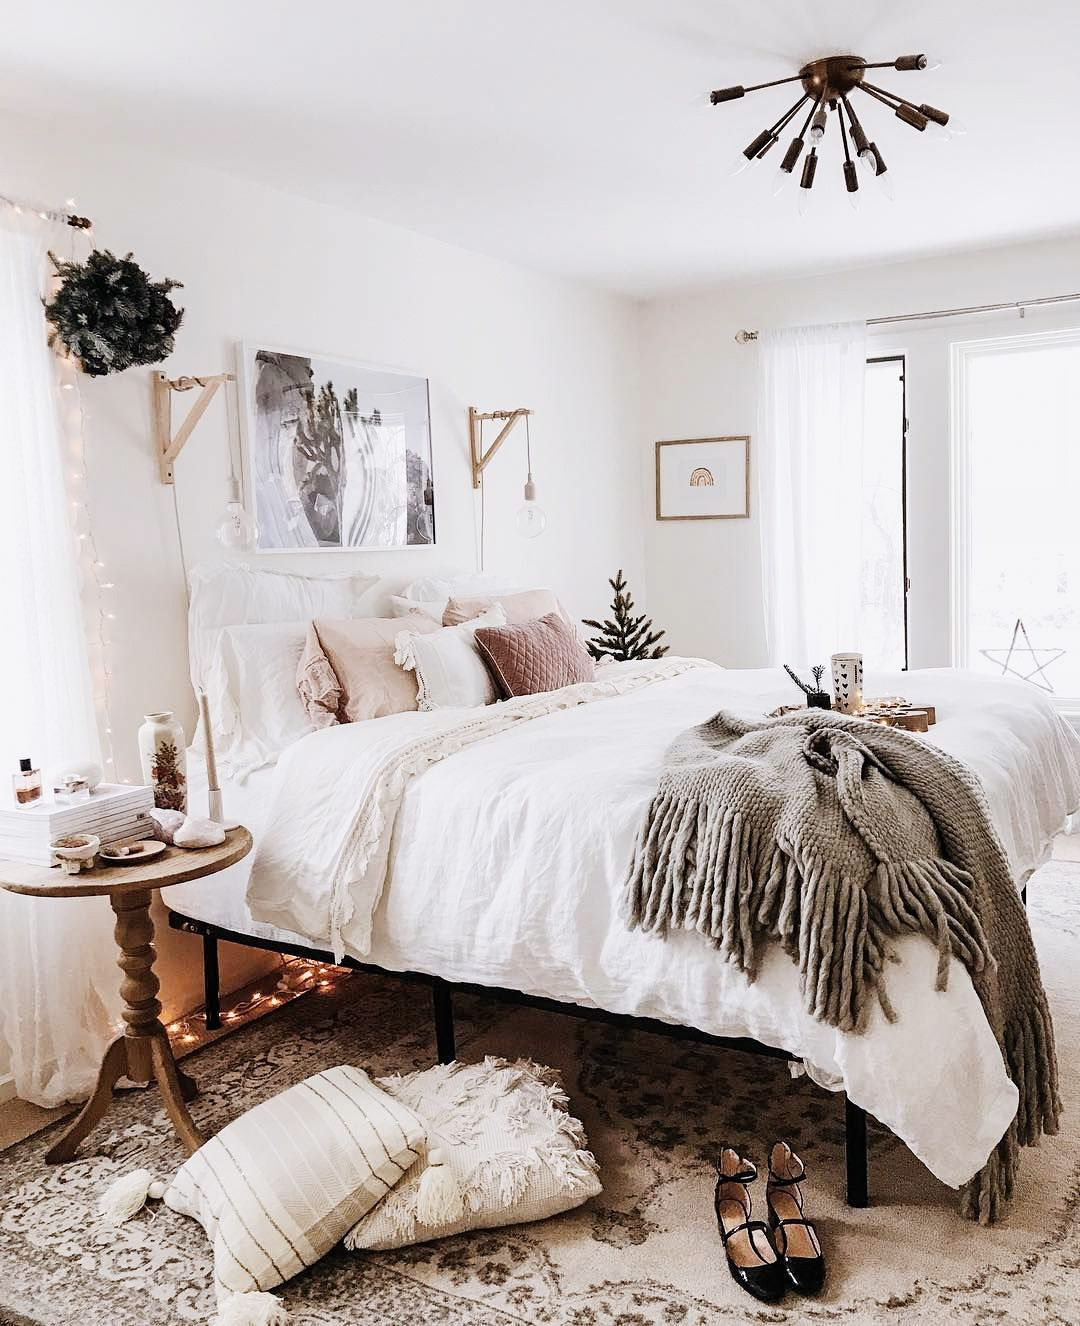 Pin by autumn on Family lyfe | Beautiful bedroom decor ... on Comfy Bedroom Ideas  id=16926